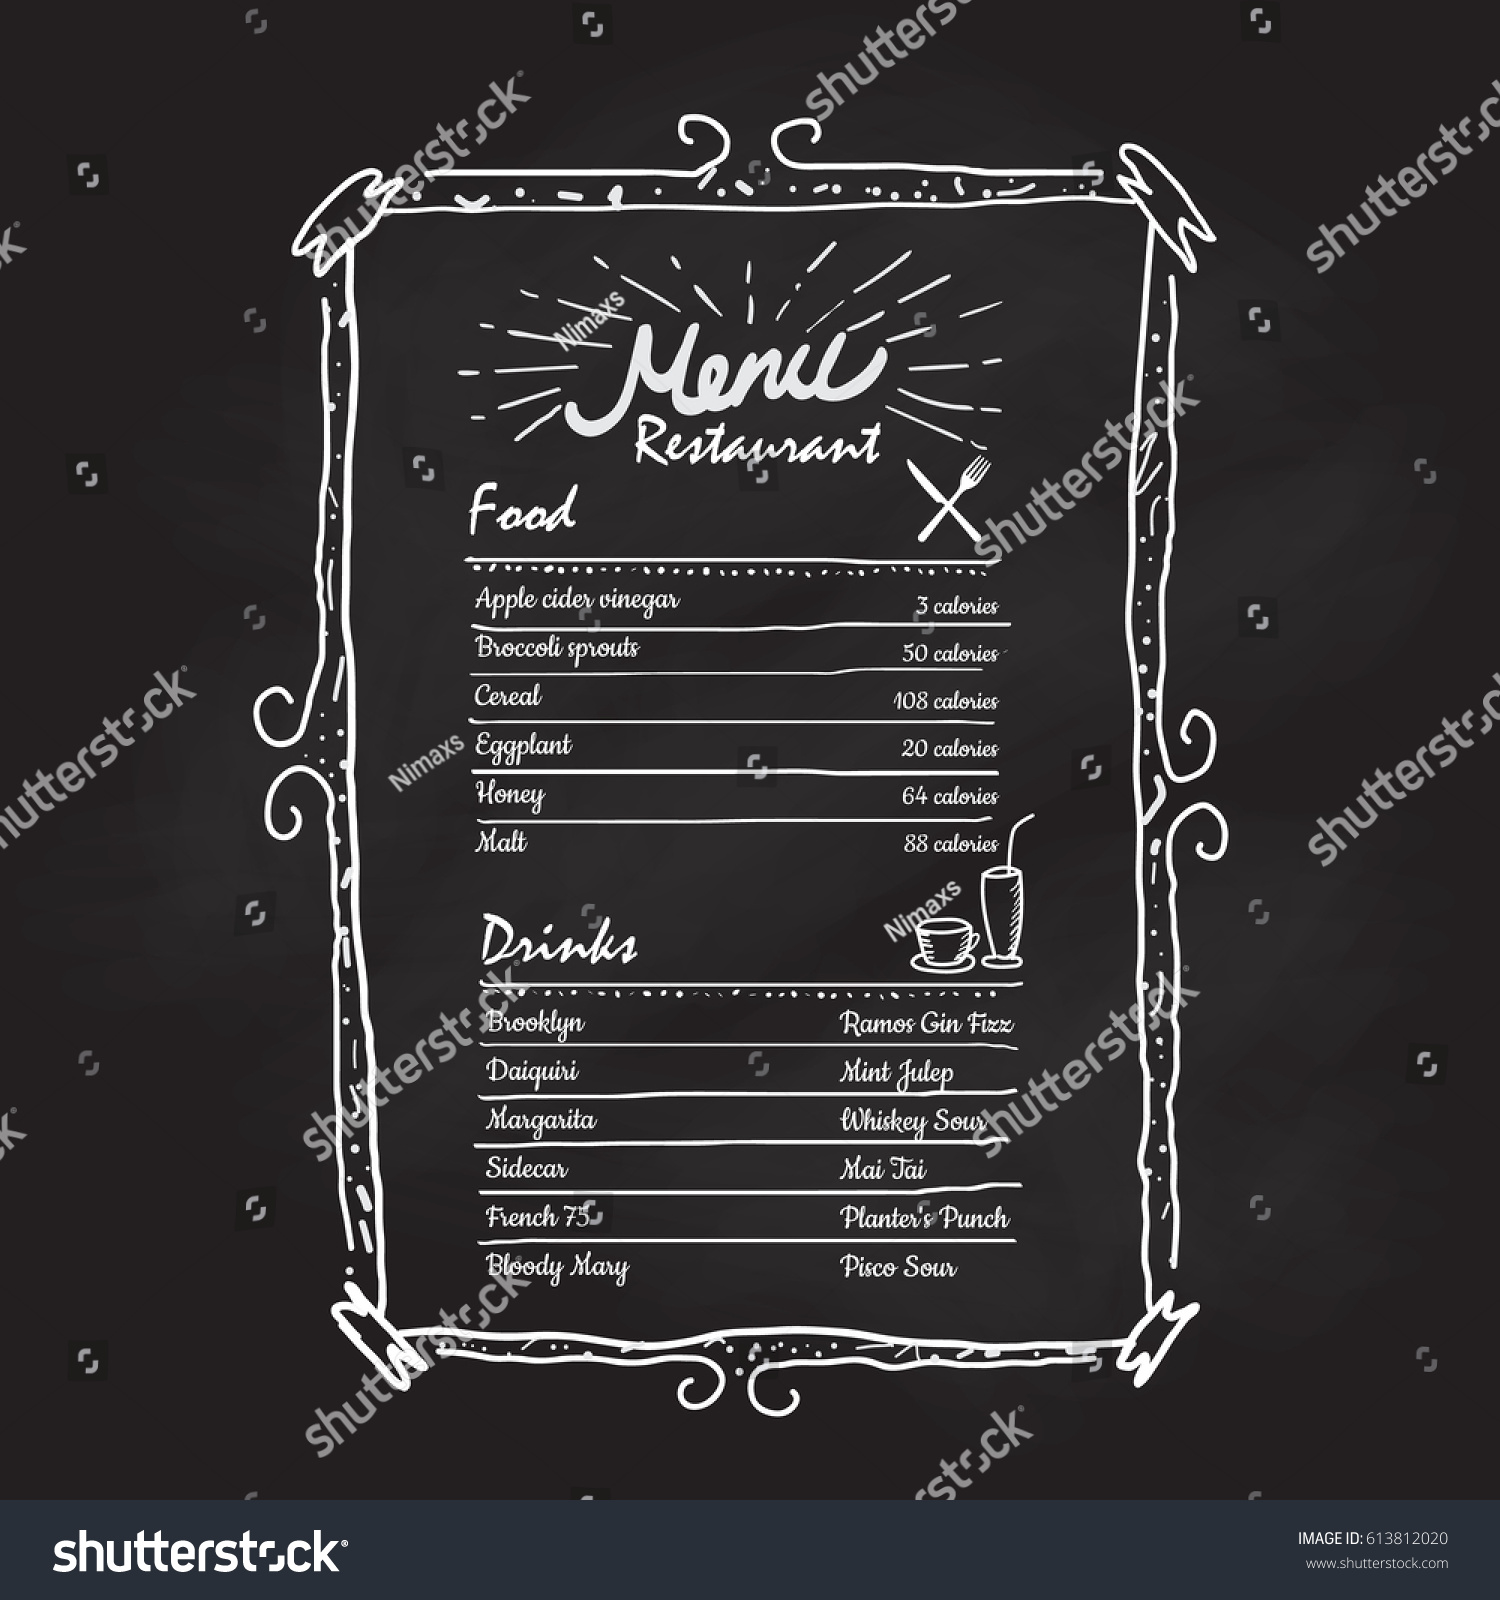 hand drawn frame restaurant menu vintage stock vector (royalty free